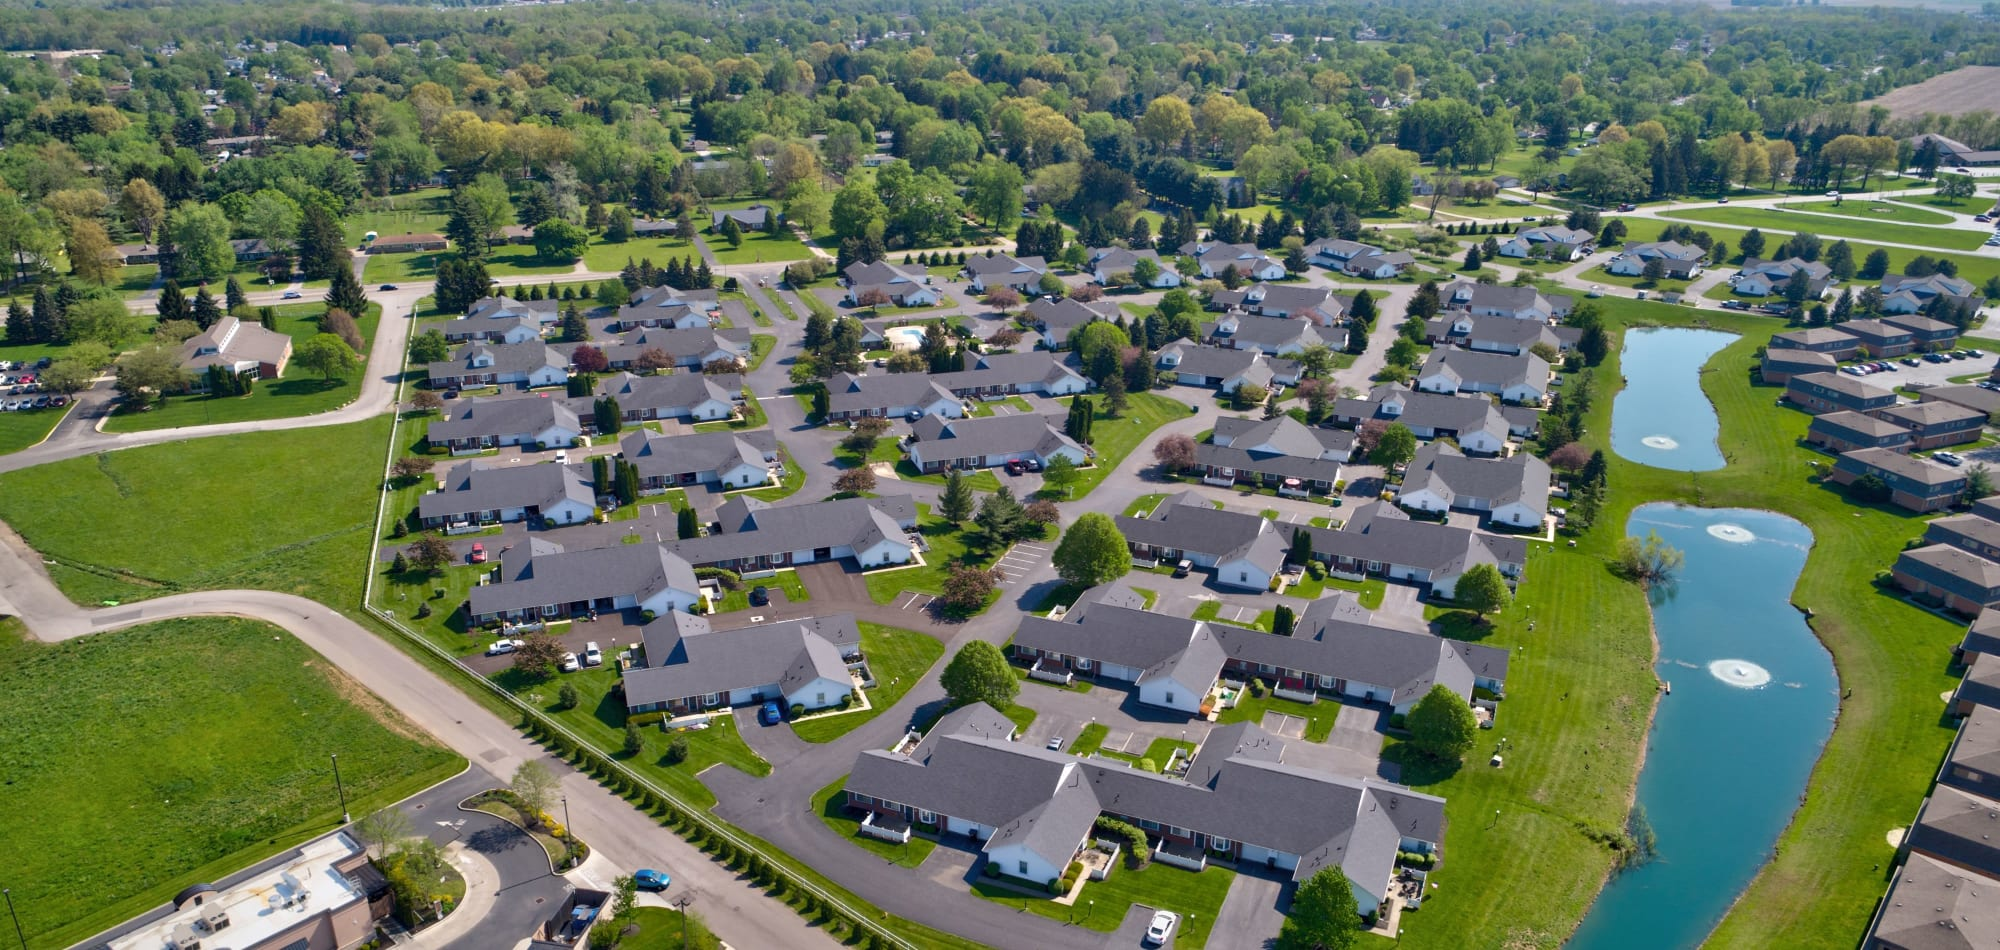 Brittany Bay Apartments and Townhomes apartments in Groveport, Ohio